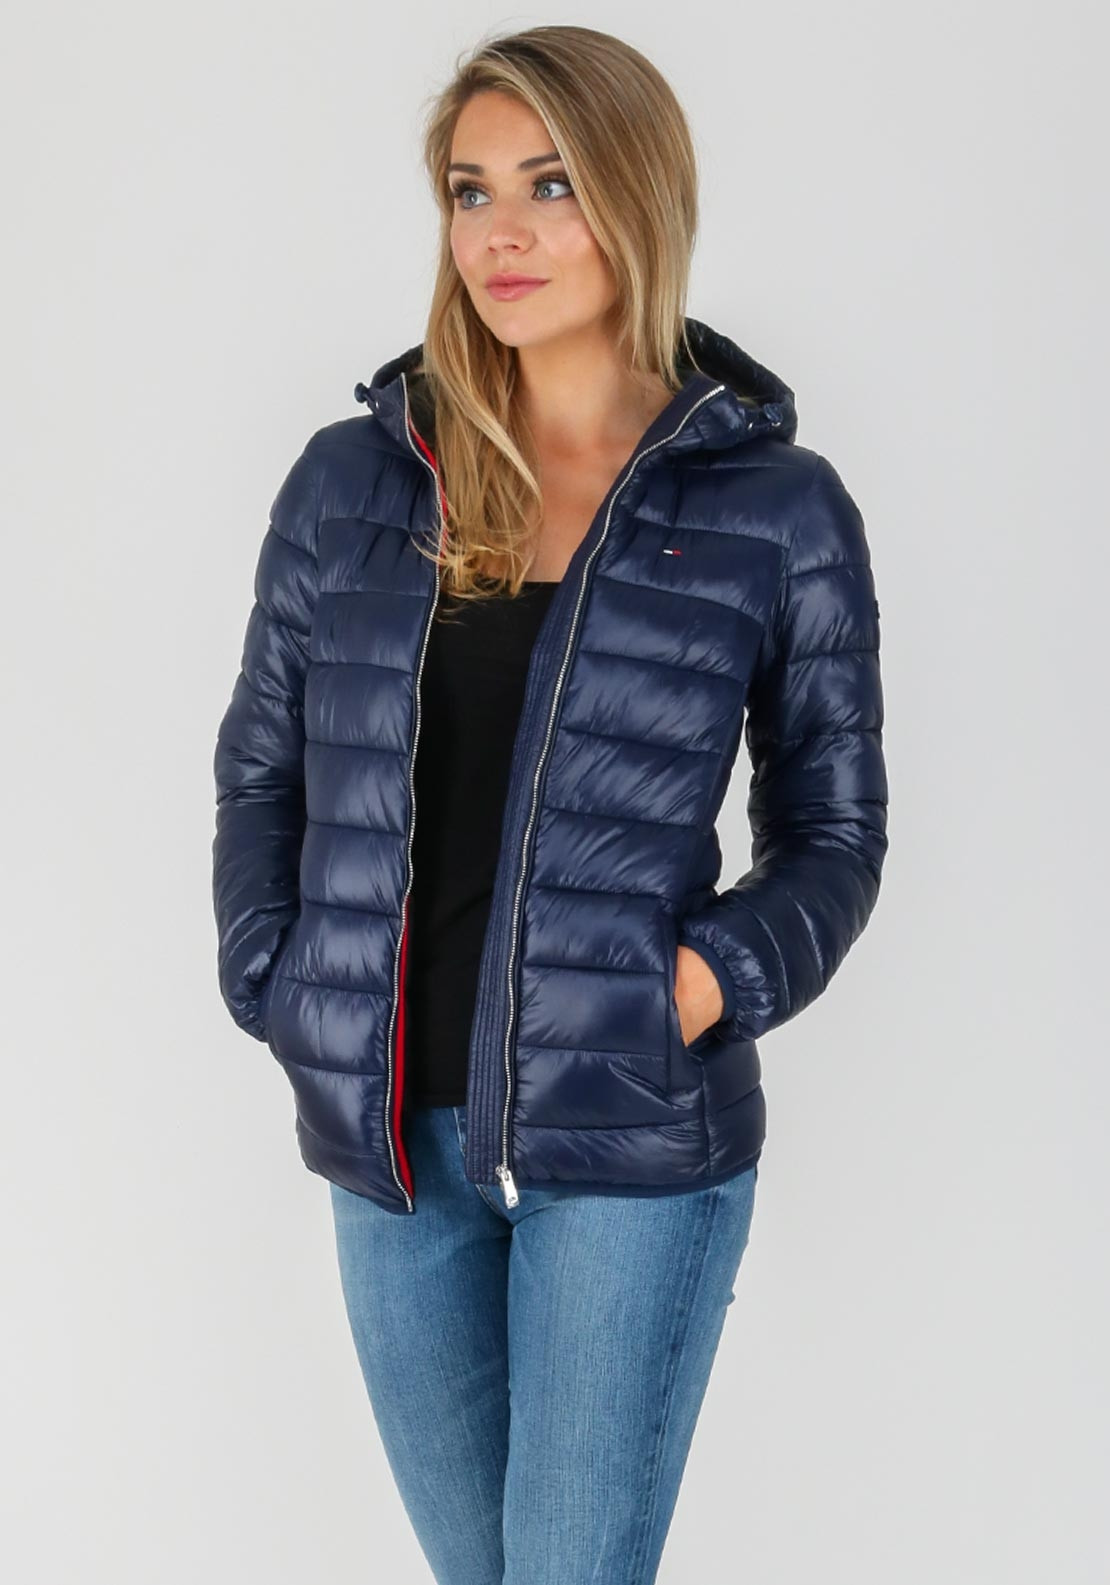 461648200a897 Tommy Hilfiger Womens Quilted Jacket, Navy. Be the first to review this  product